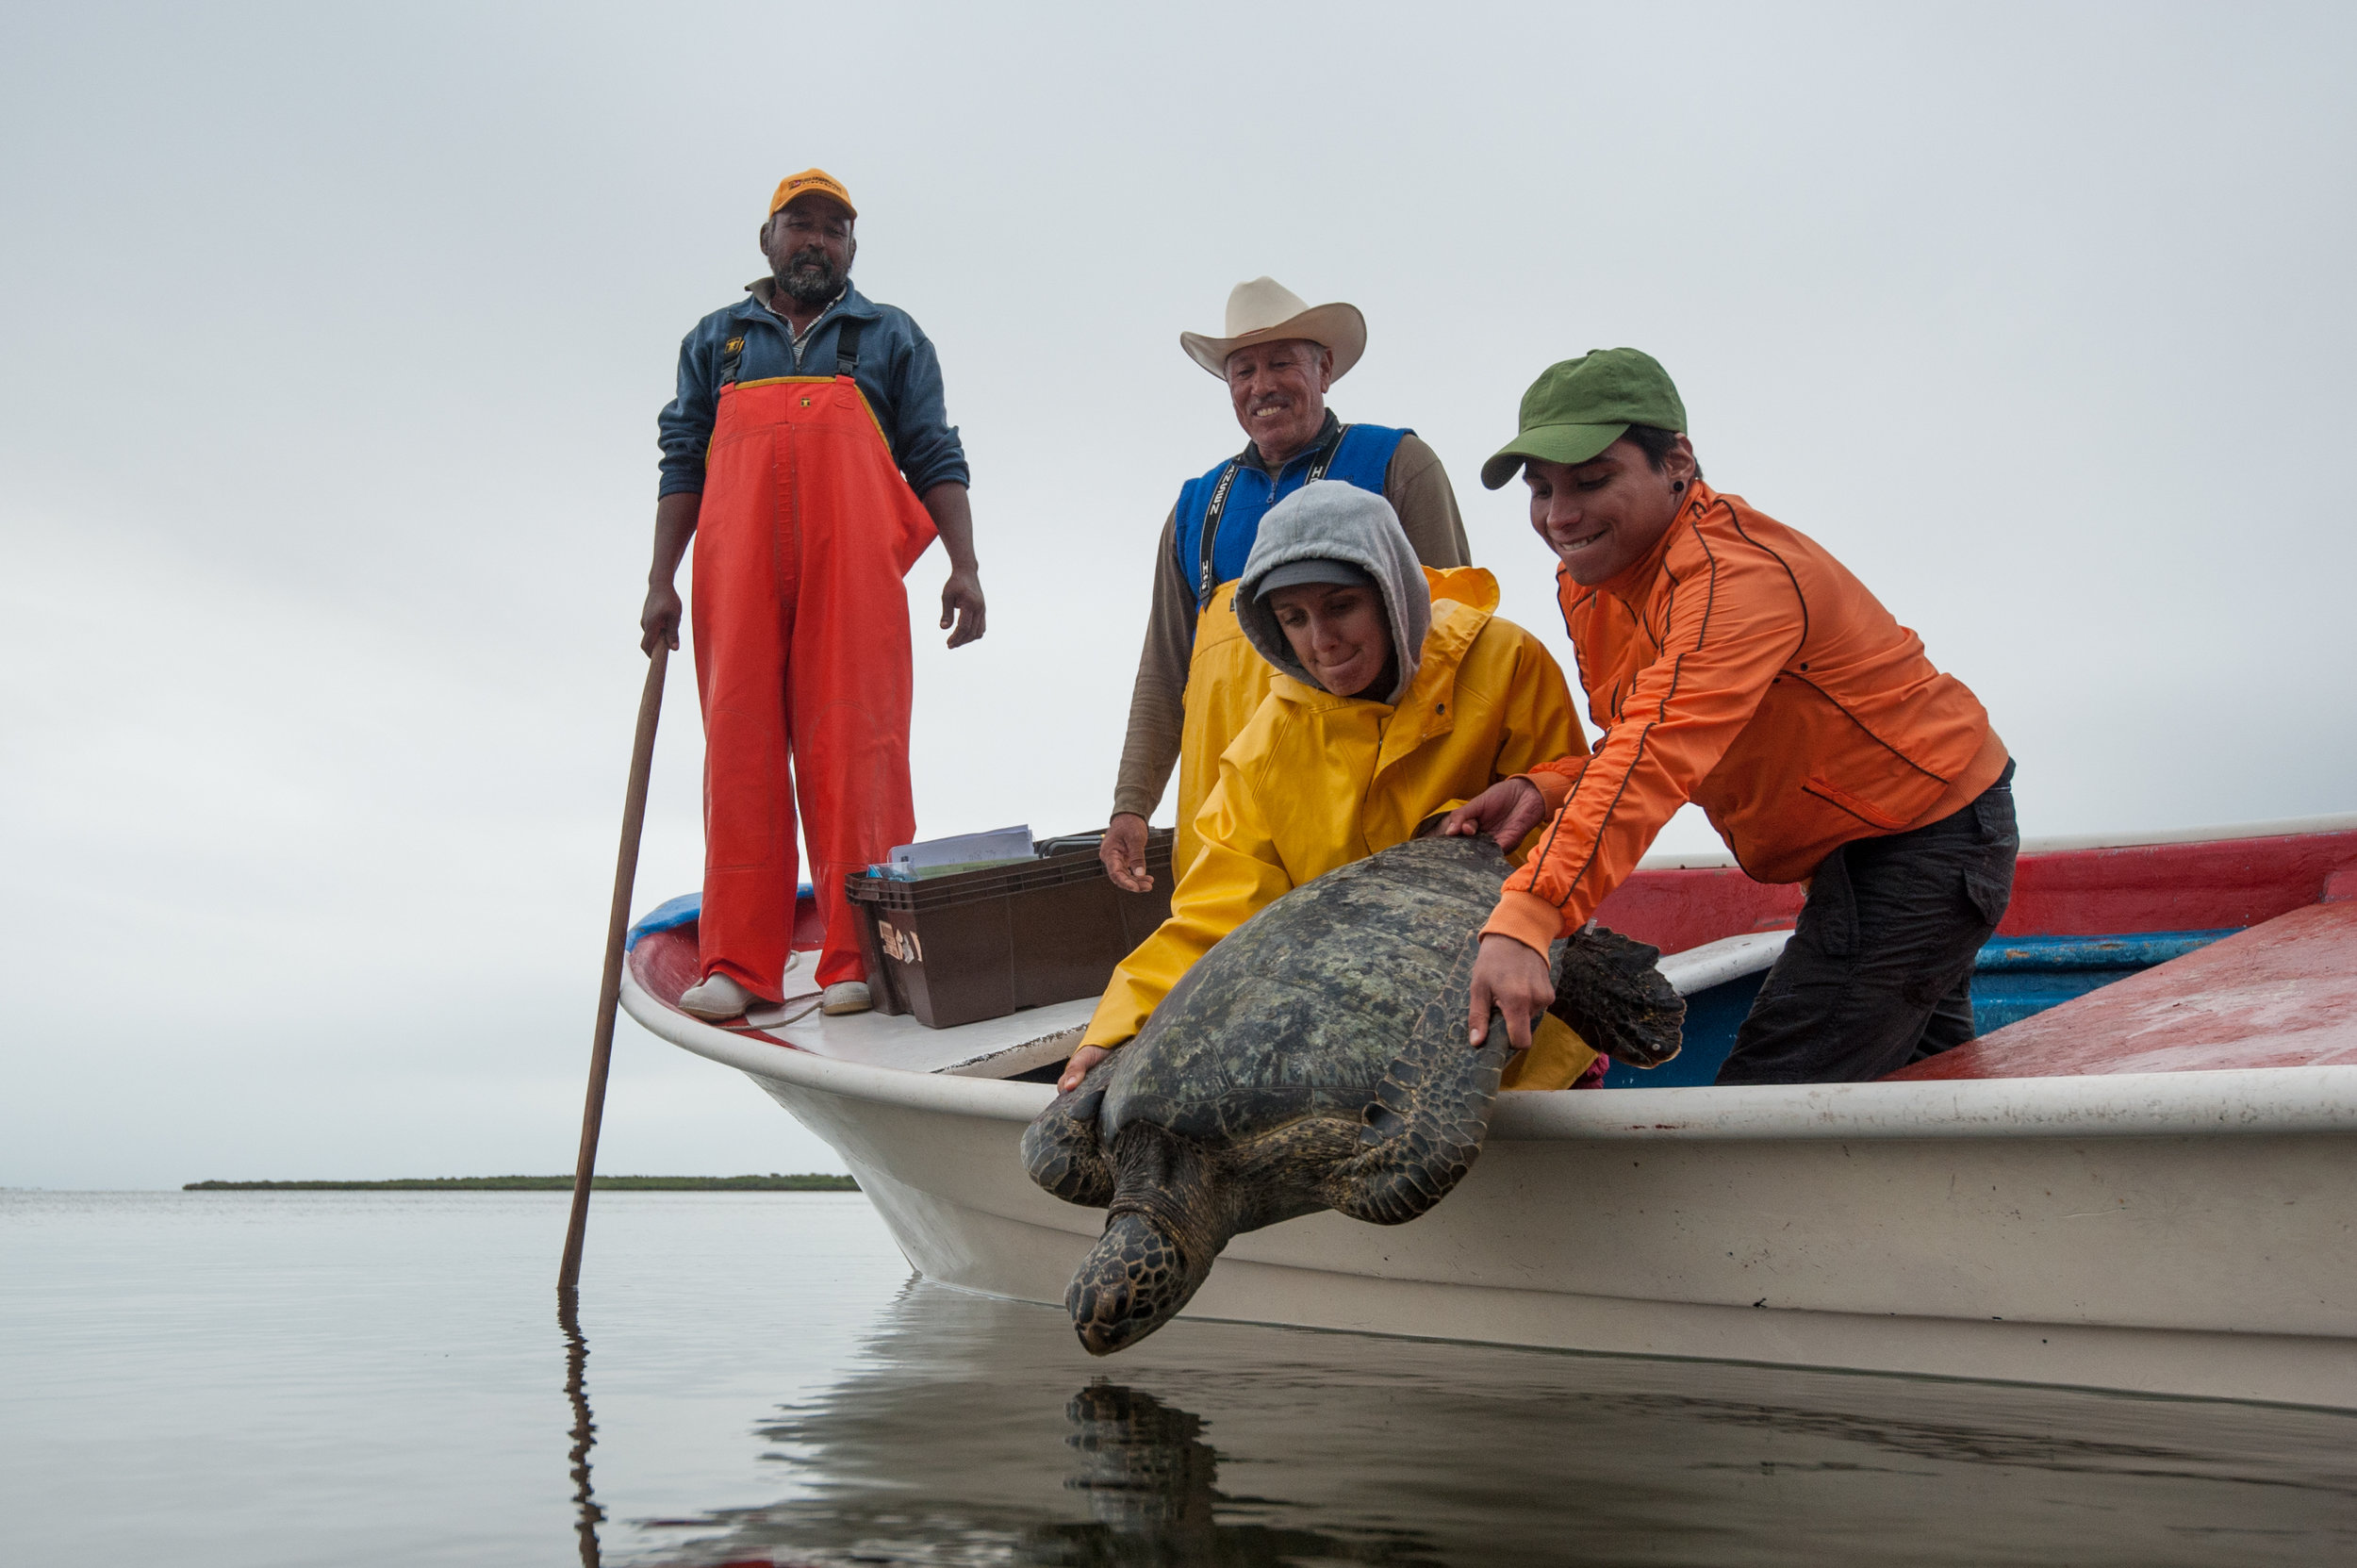 Once the data is collected, we will release the turtles back to the water